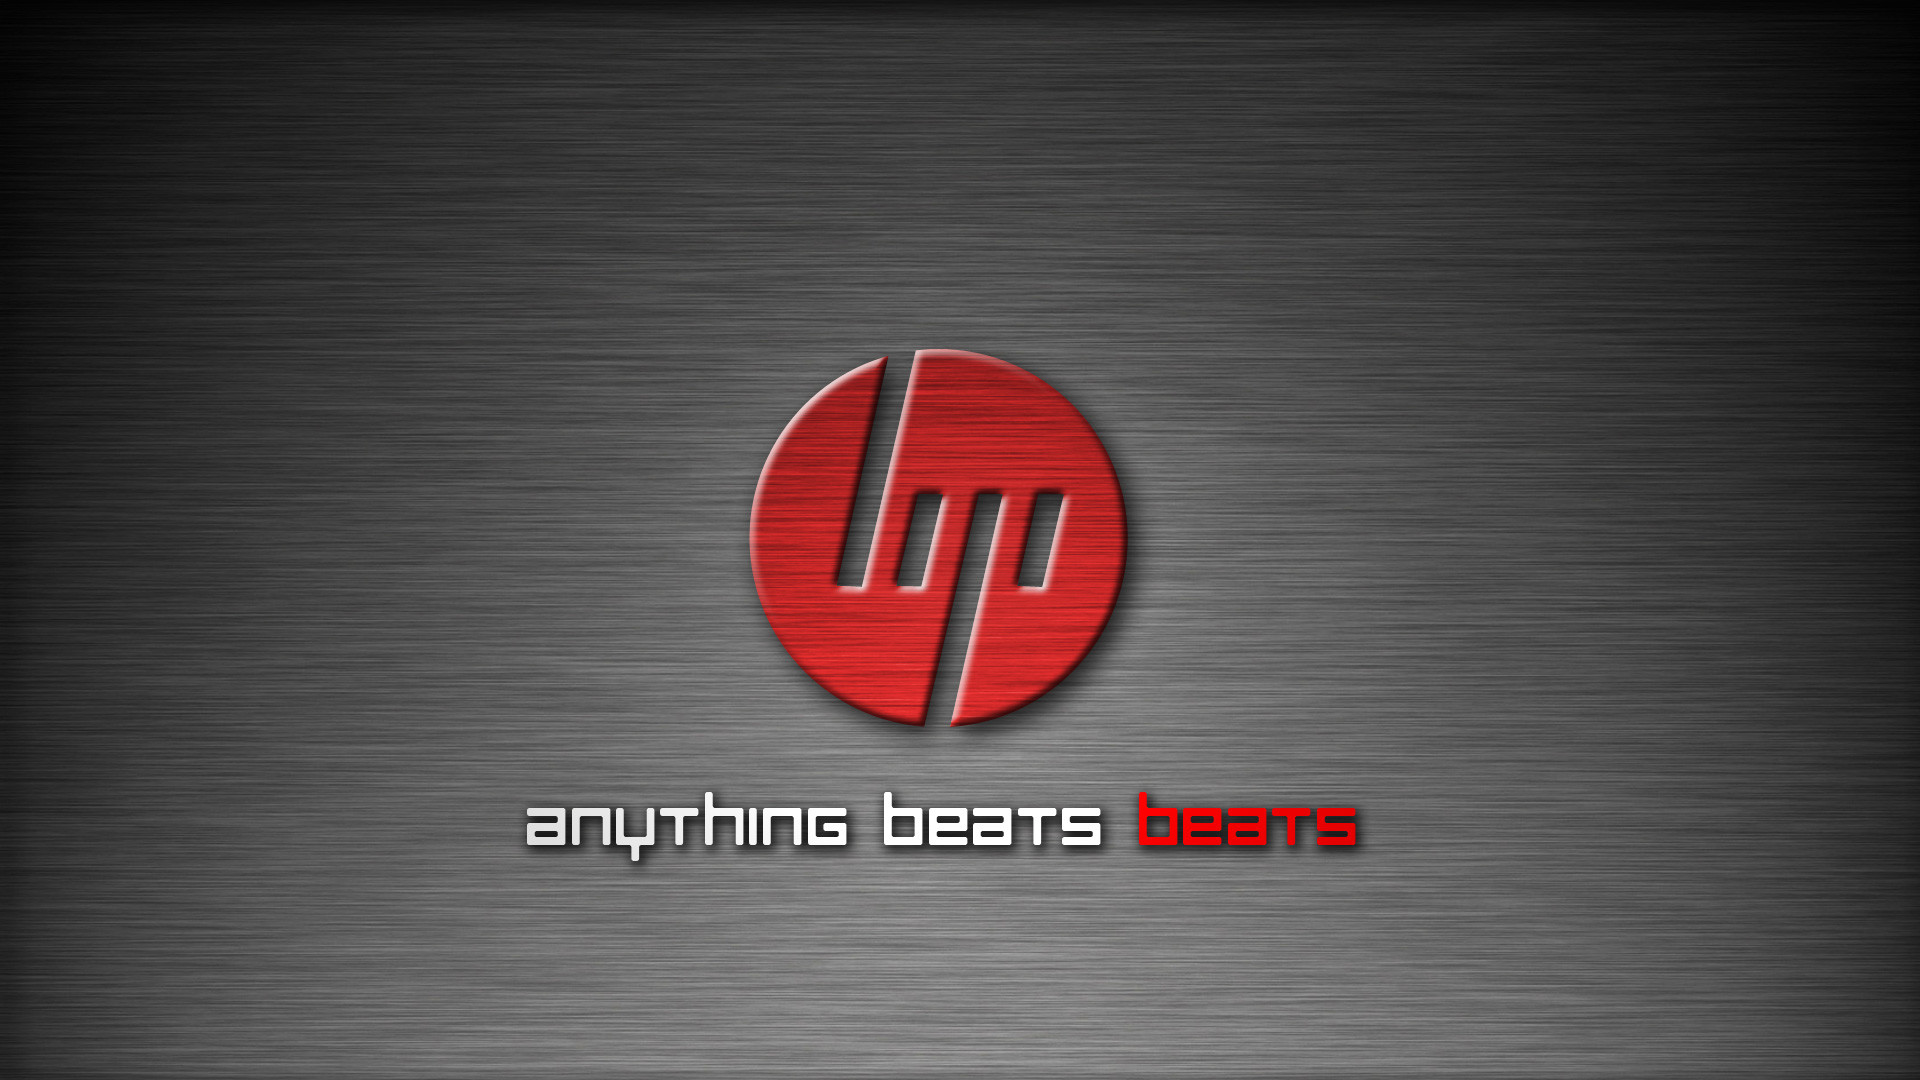 Best 56+ Beats Wallpaper on HipWallpaper | HTC Beats Wallpaper ... | 1080x1920